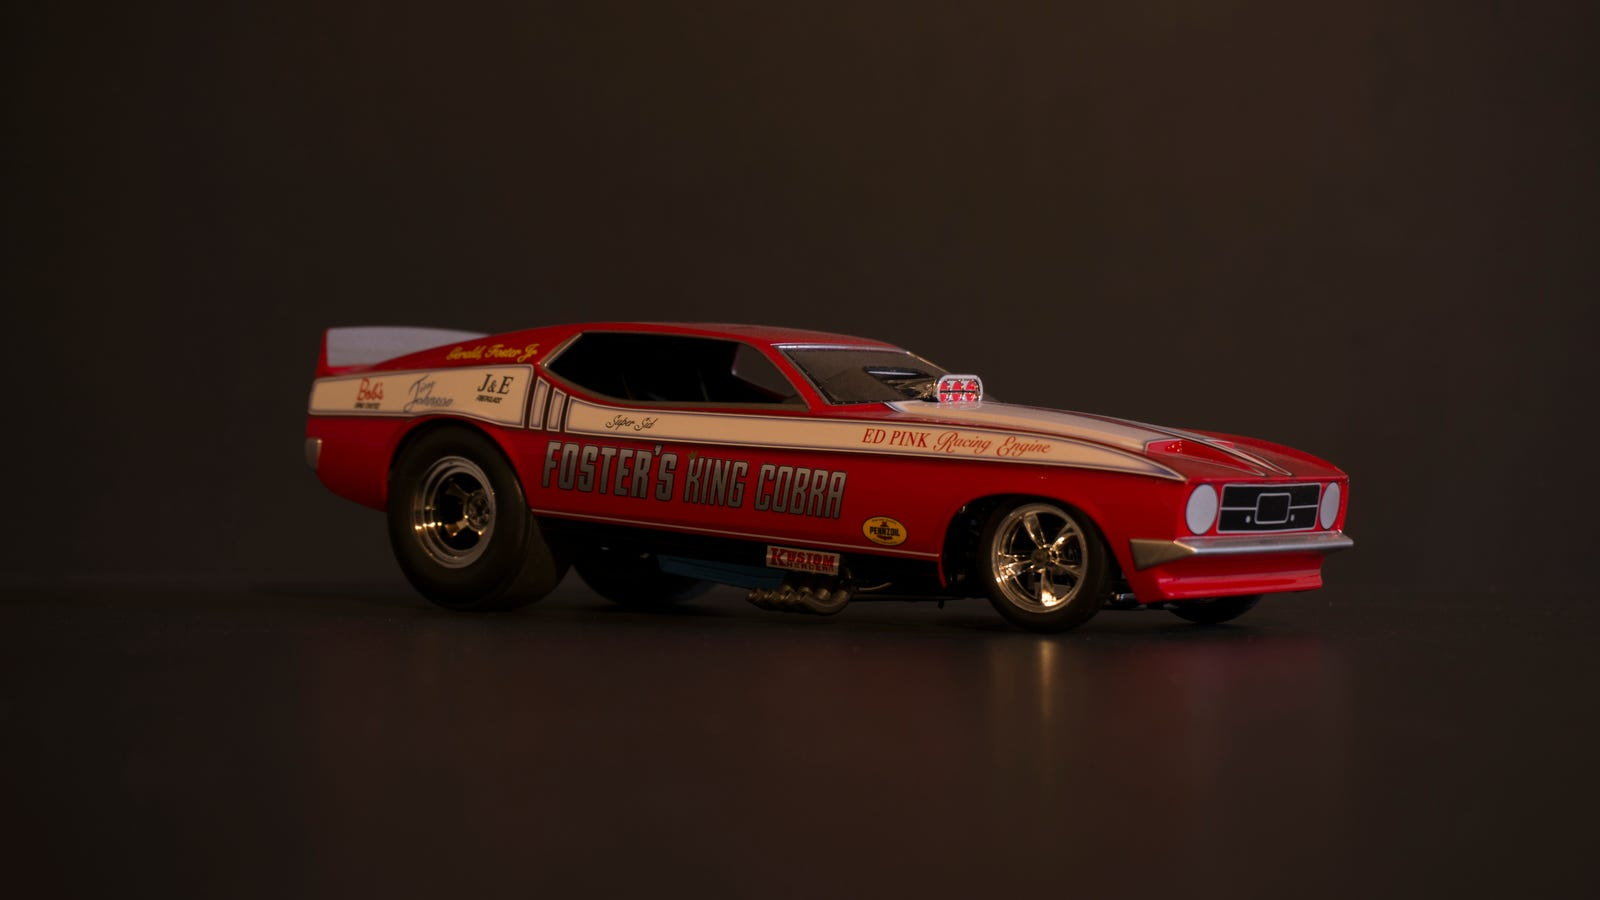 Foster's King Cobra: 1972 Mustang Mach 1 Funny Car